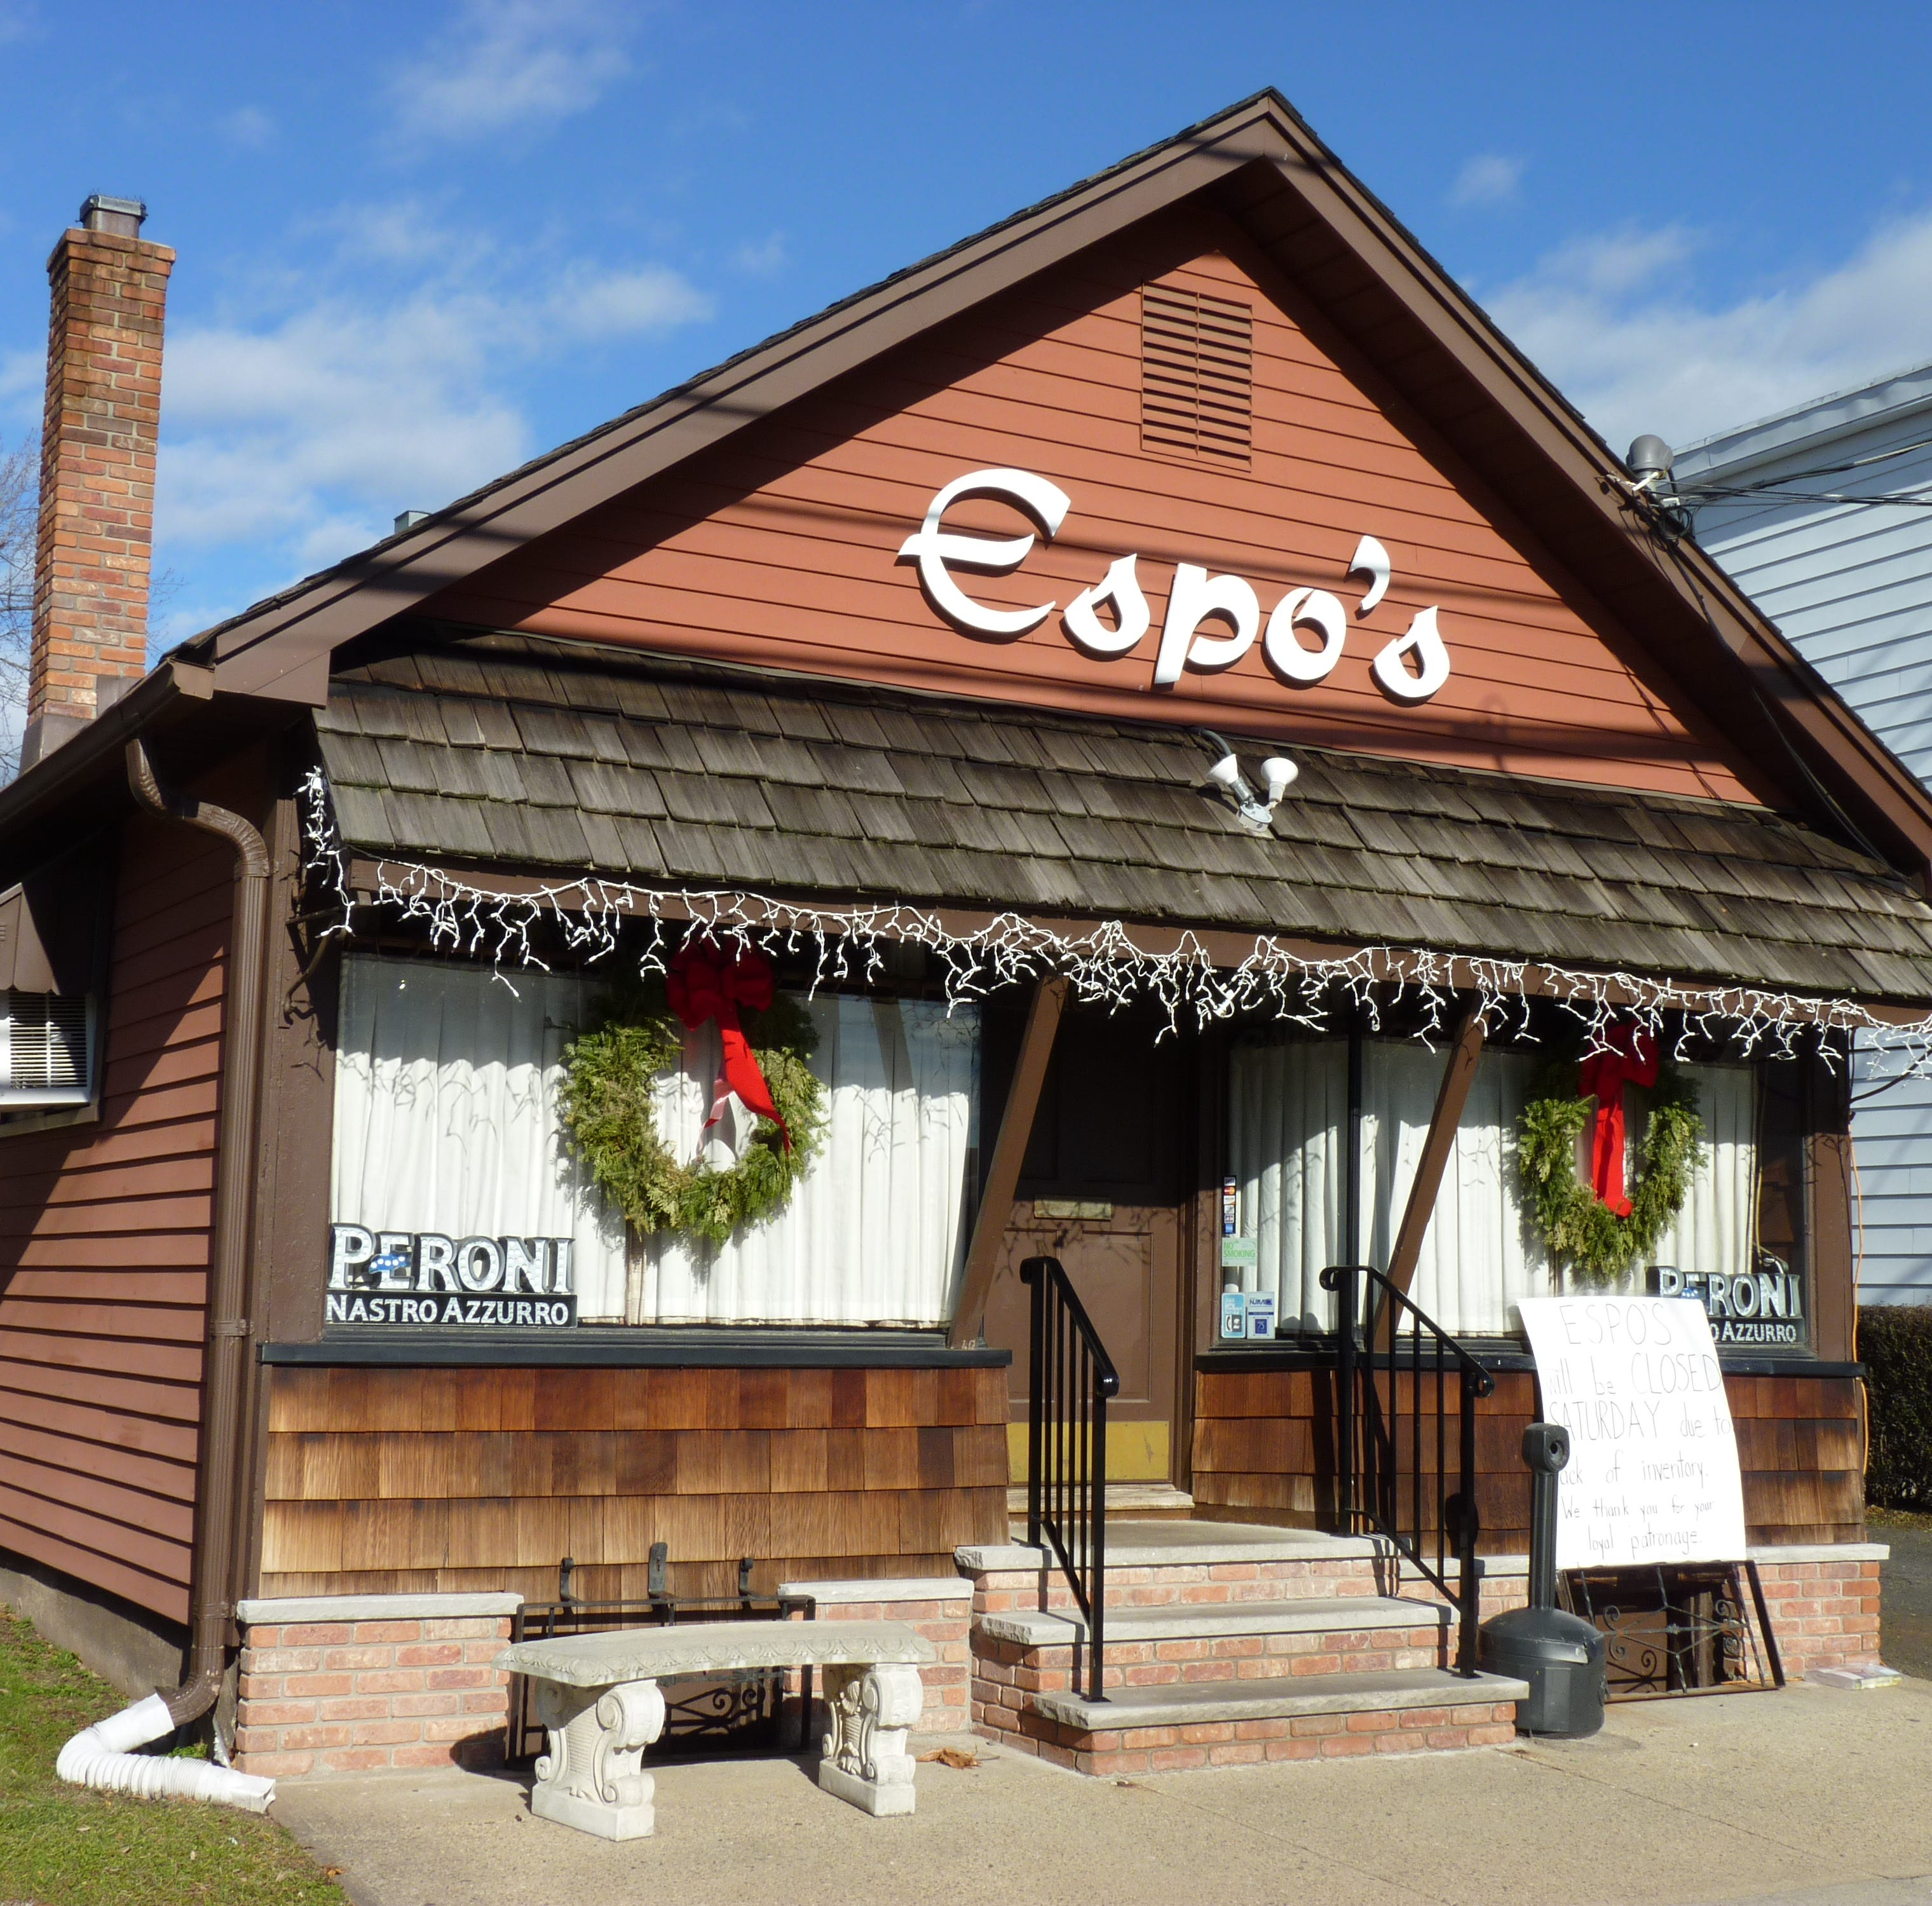 Espo's Italian restaurant in Raritan to reopen with new owner